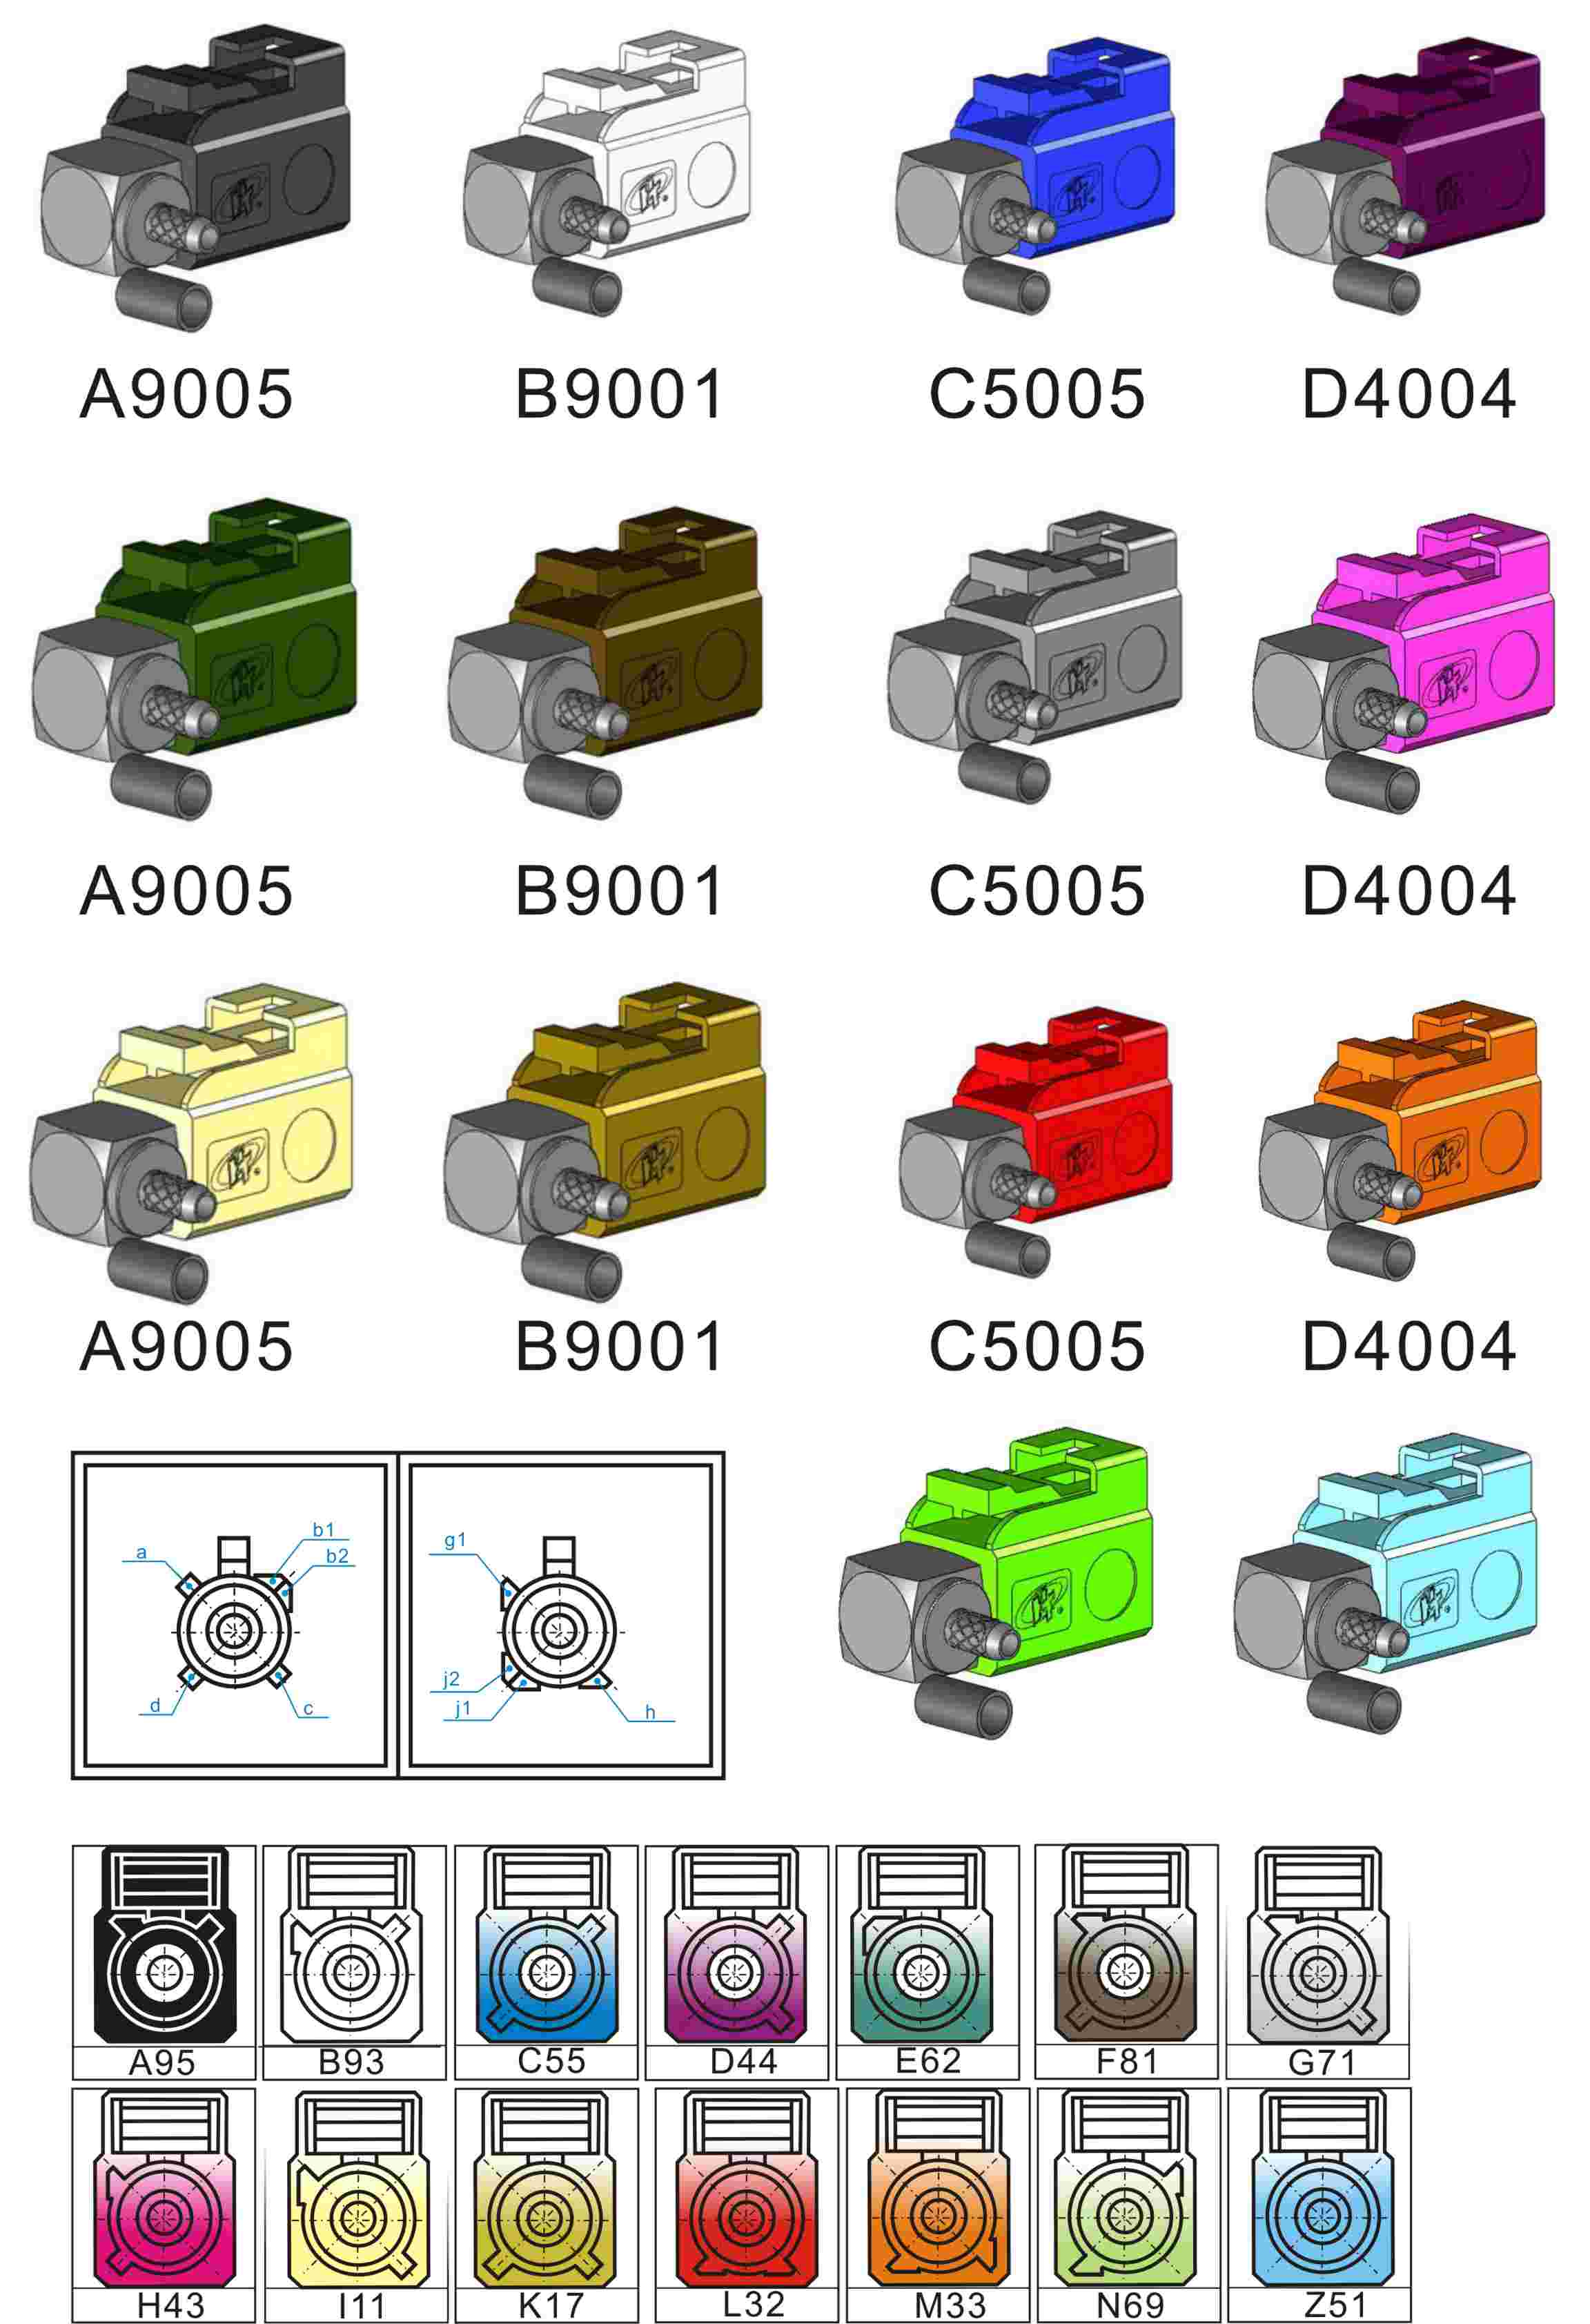 Progressive Die also Electricalconnectors X in addition  further A F D D E E E E E C C Fakra together with Sets Mm Way Automotive Motorcycle Electrical Connector Kits Male Female Wire Terminal Socket Plug. on automotive electrical connectors